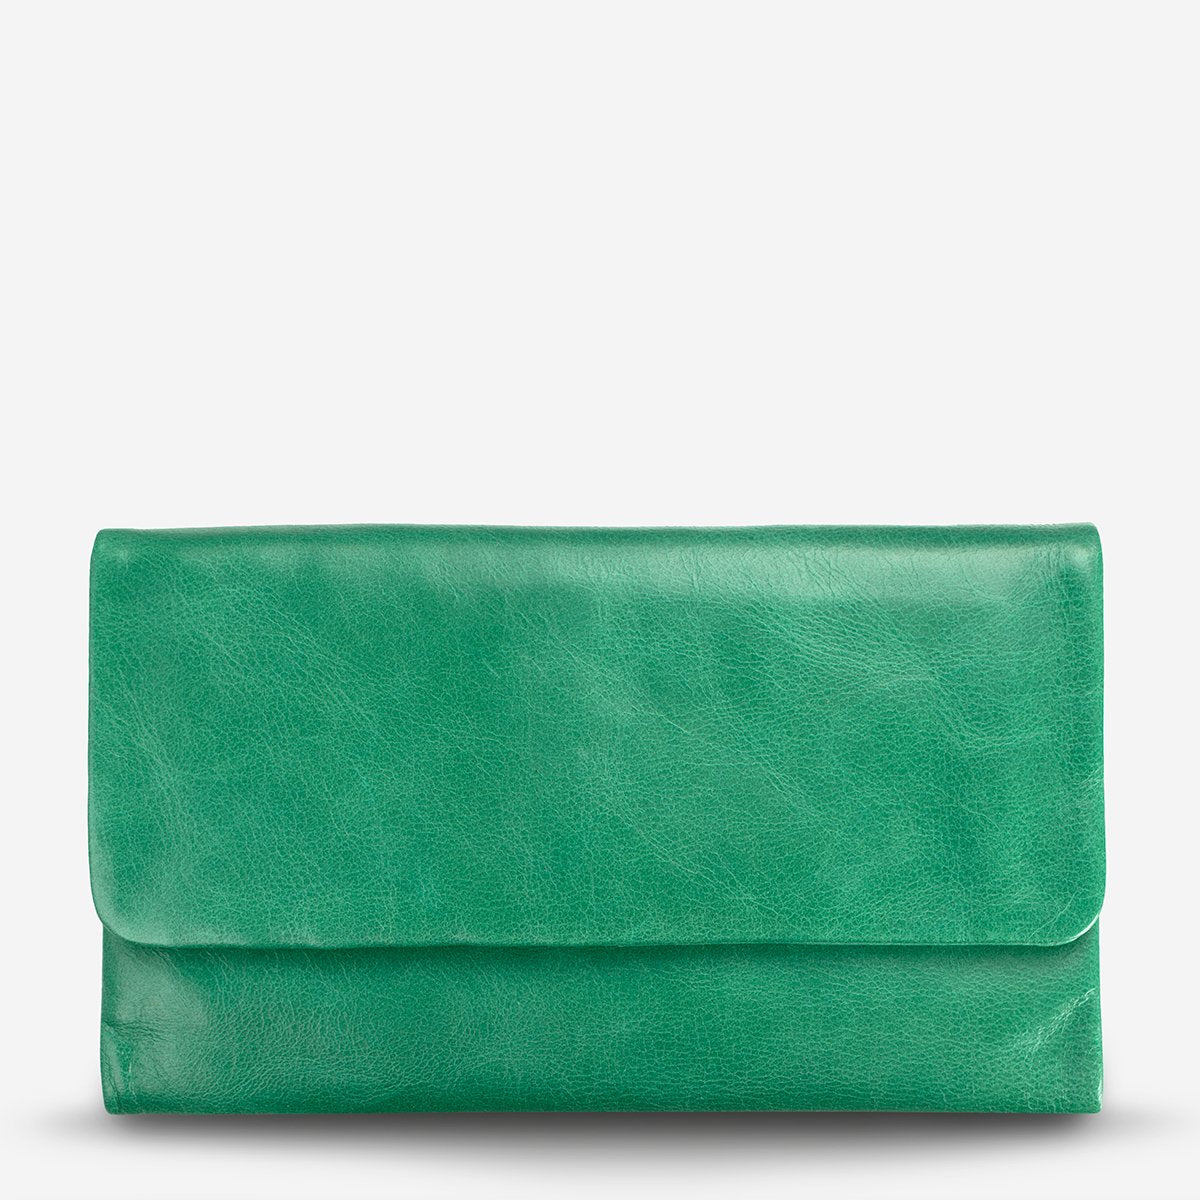 AUDREY WALLET- EMERALD // STATUS ANXIETY